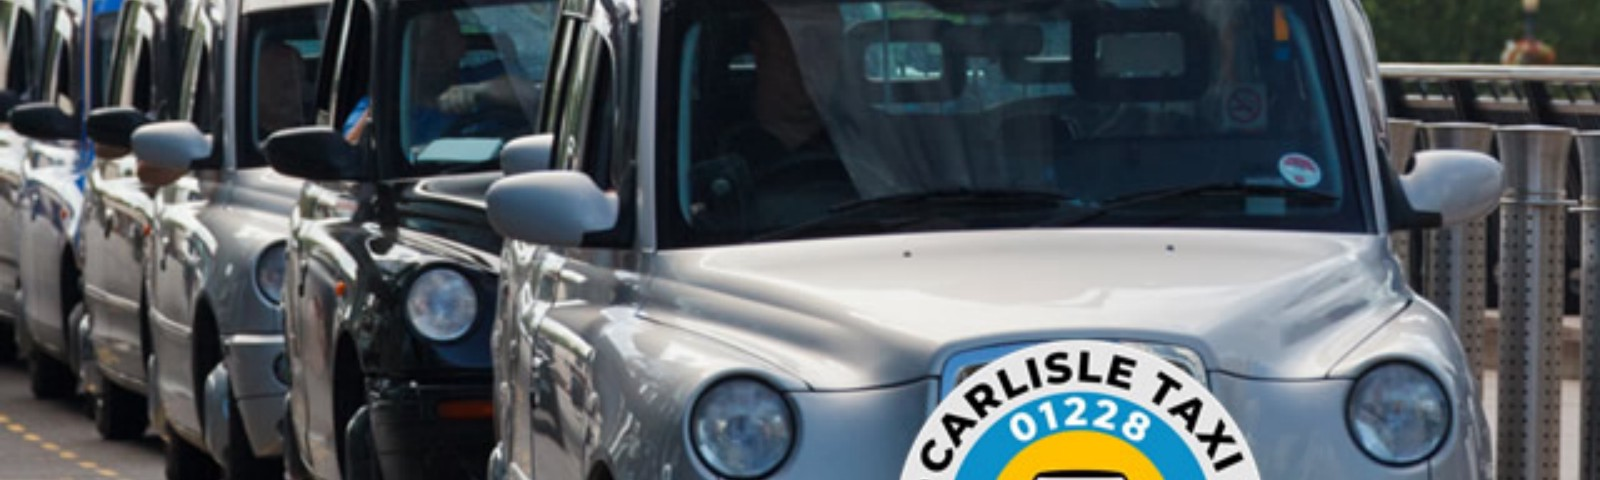 For Taxis in Carlisle contact 01228 812612 or 01228 734575